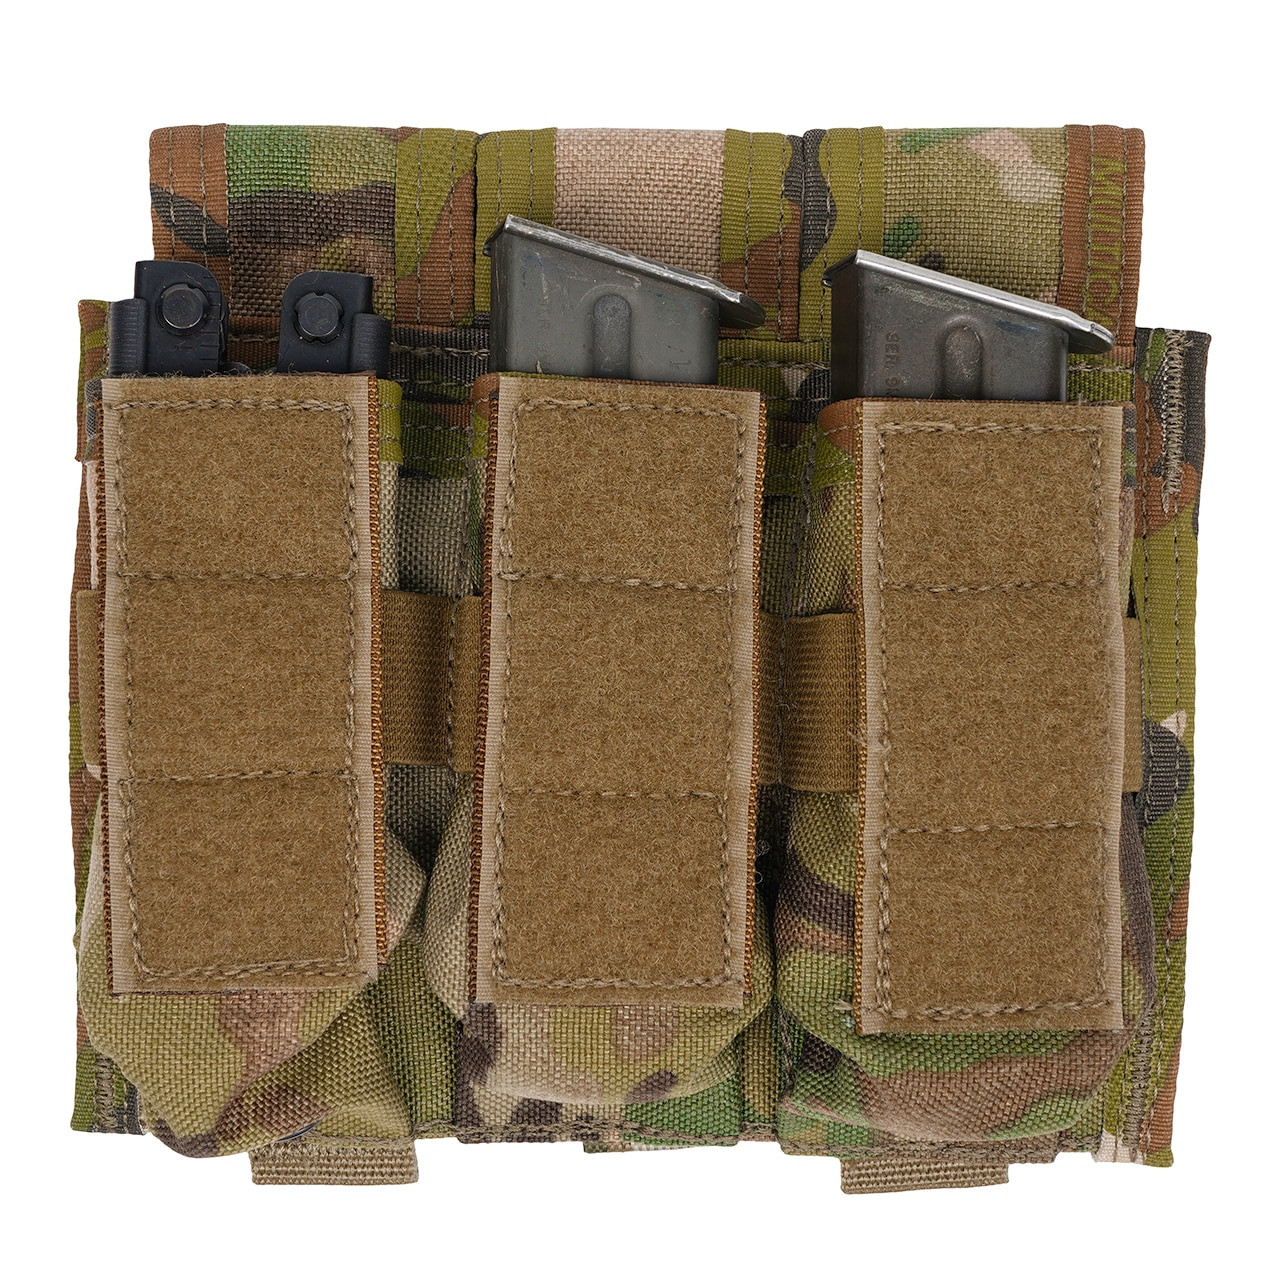 50452 UNIVERSAL MOLLE POUCH, 3 POCKET